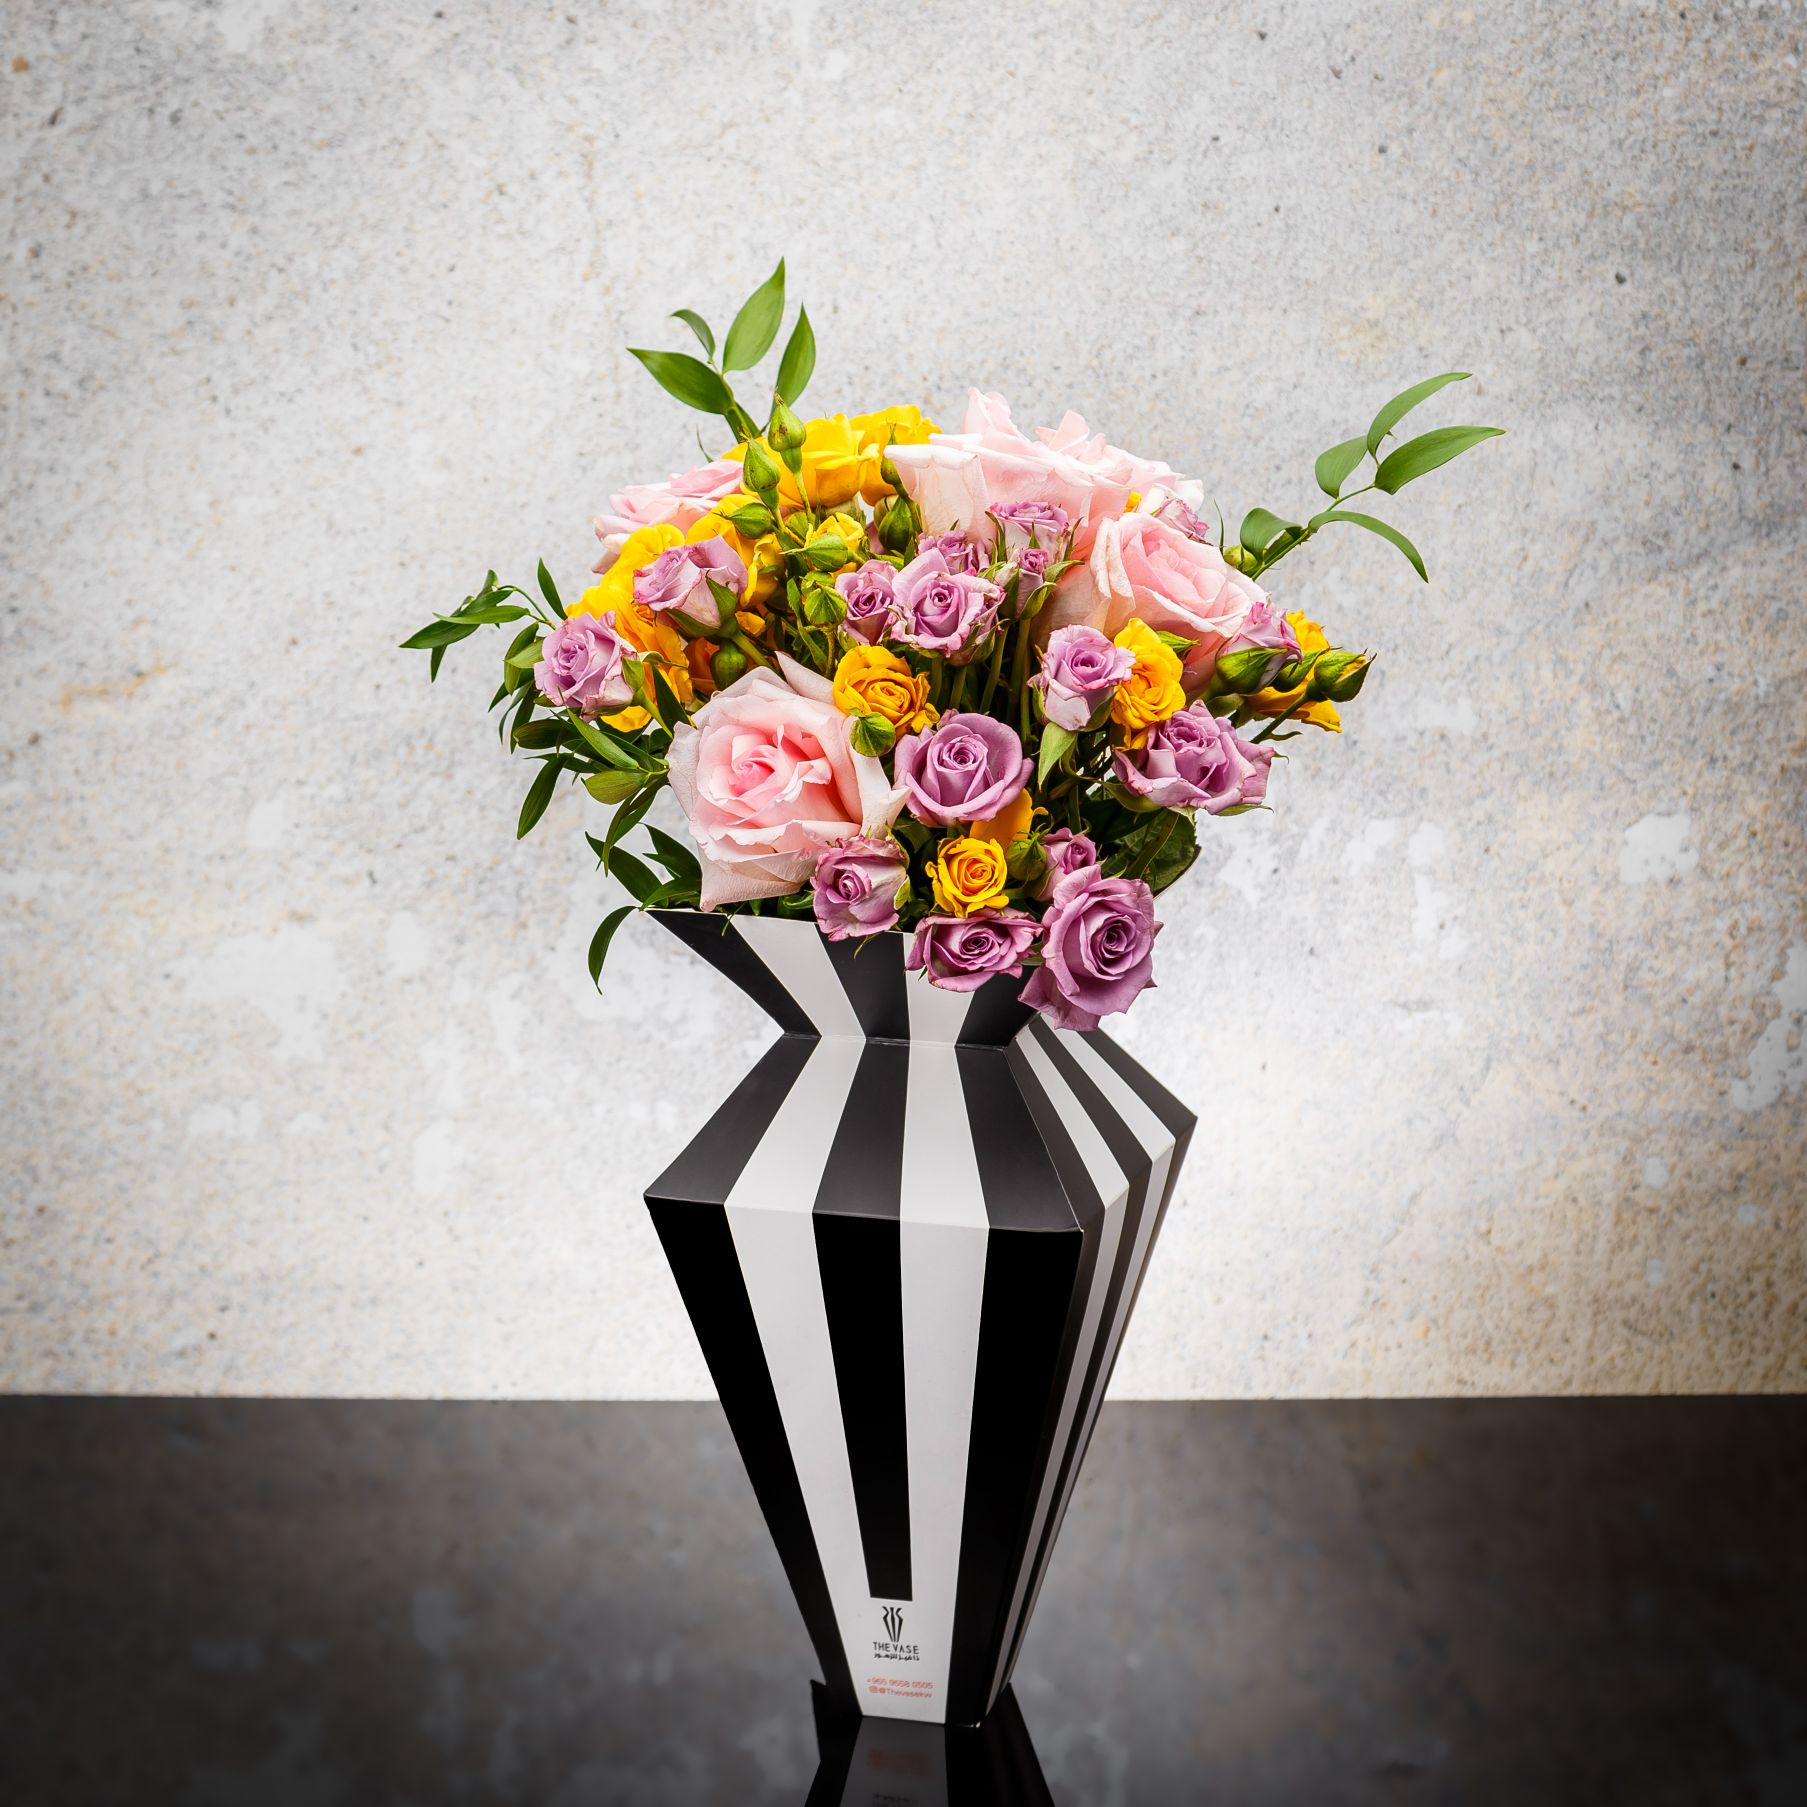 Stripe paper Vase 3 Flower with Base With Base